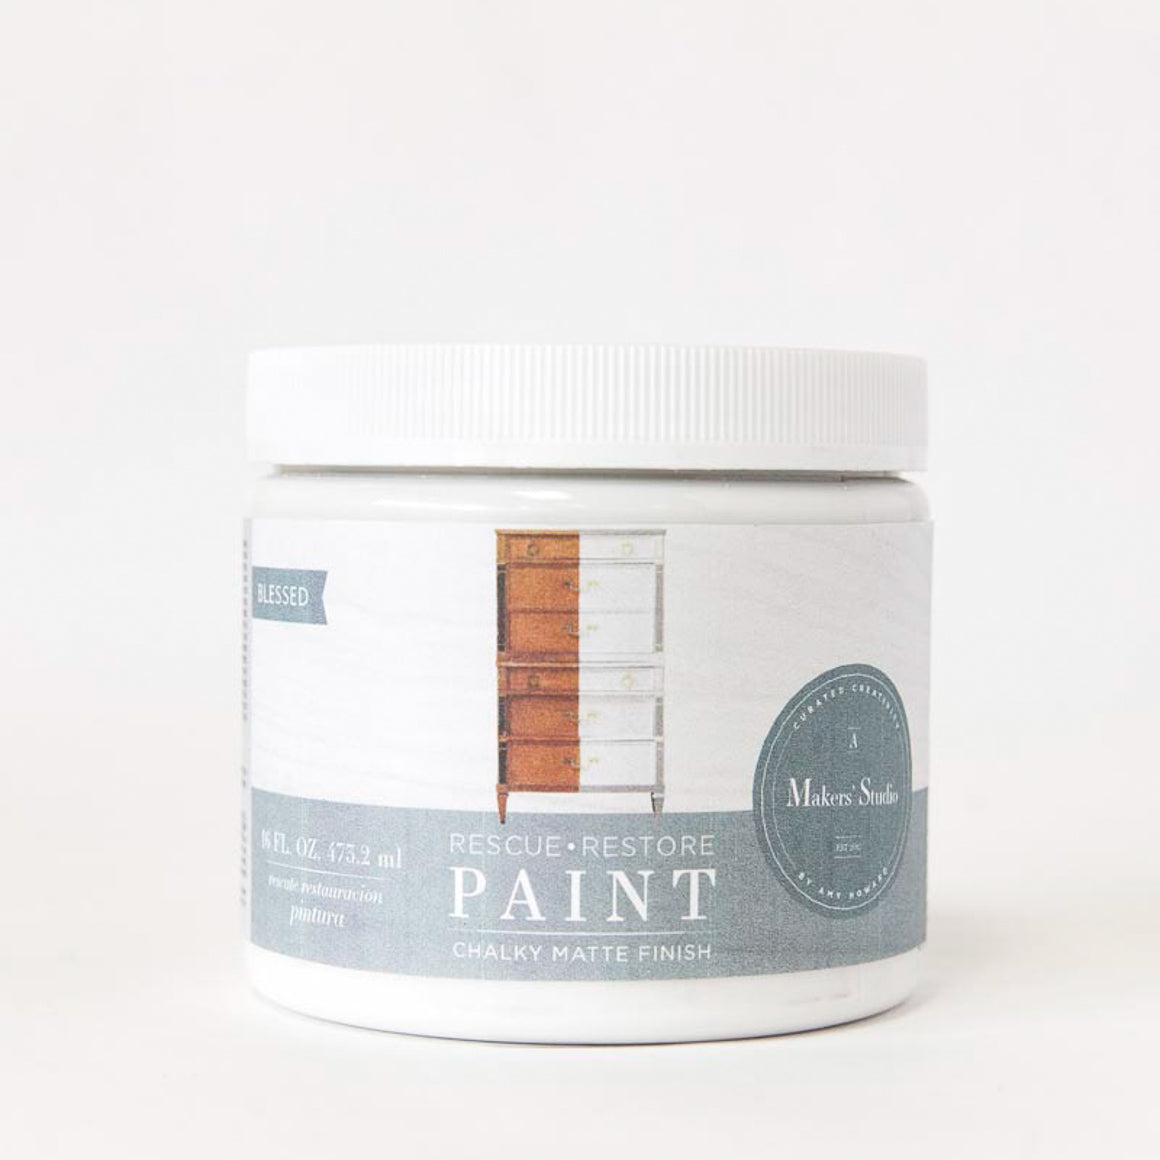 Blessed - Rescue Restore Paint